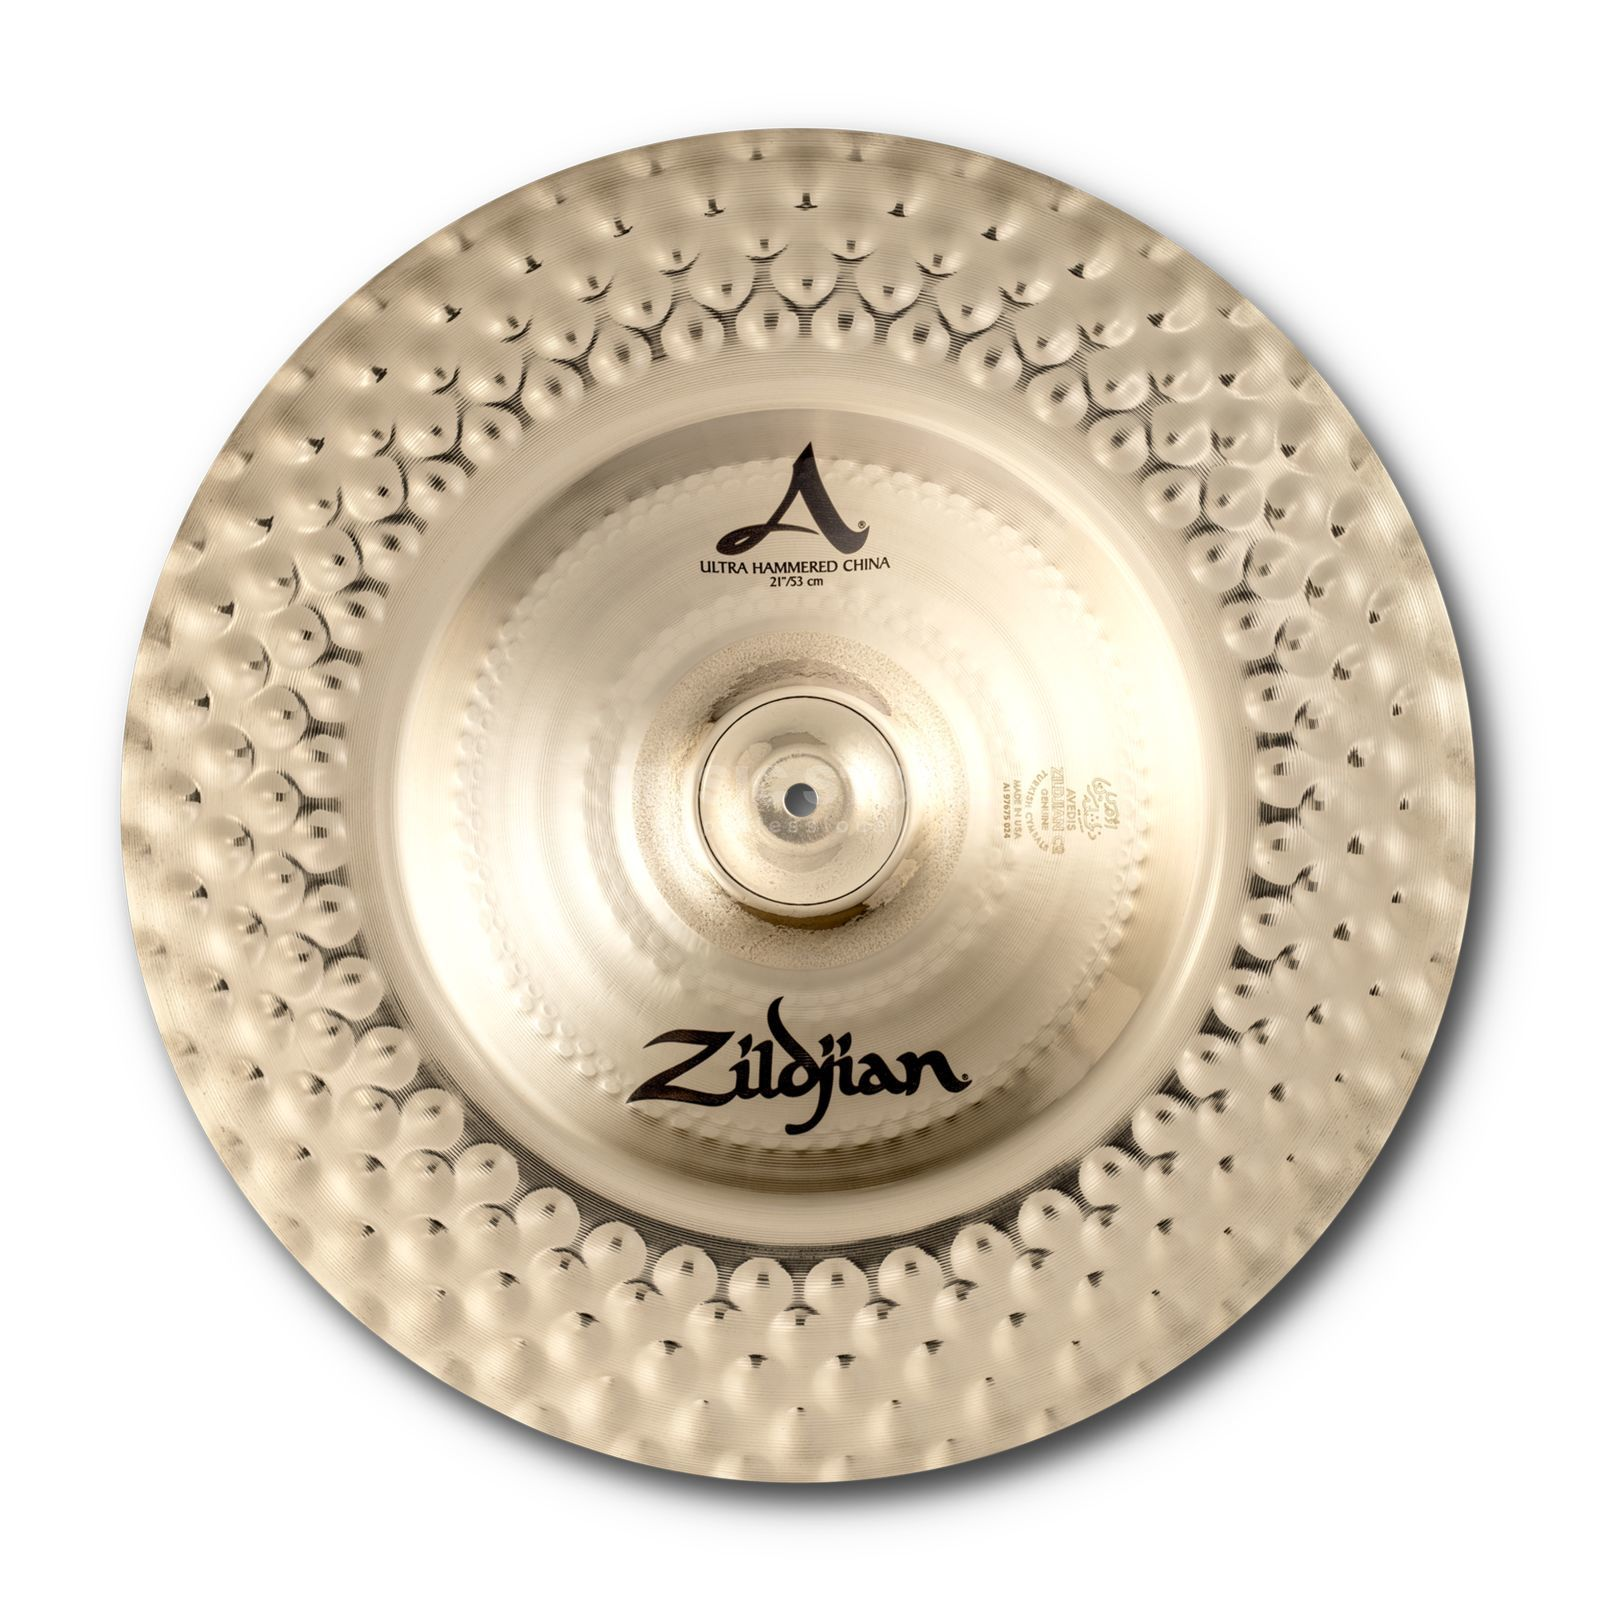 "Zildjian A' Zildjian Ultra Hammered China 21"" Produktbild"